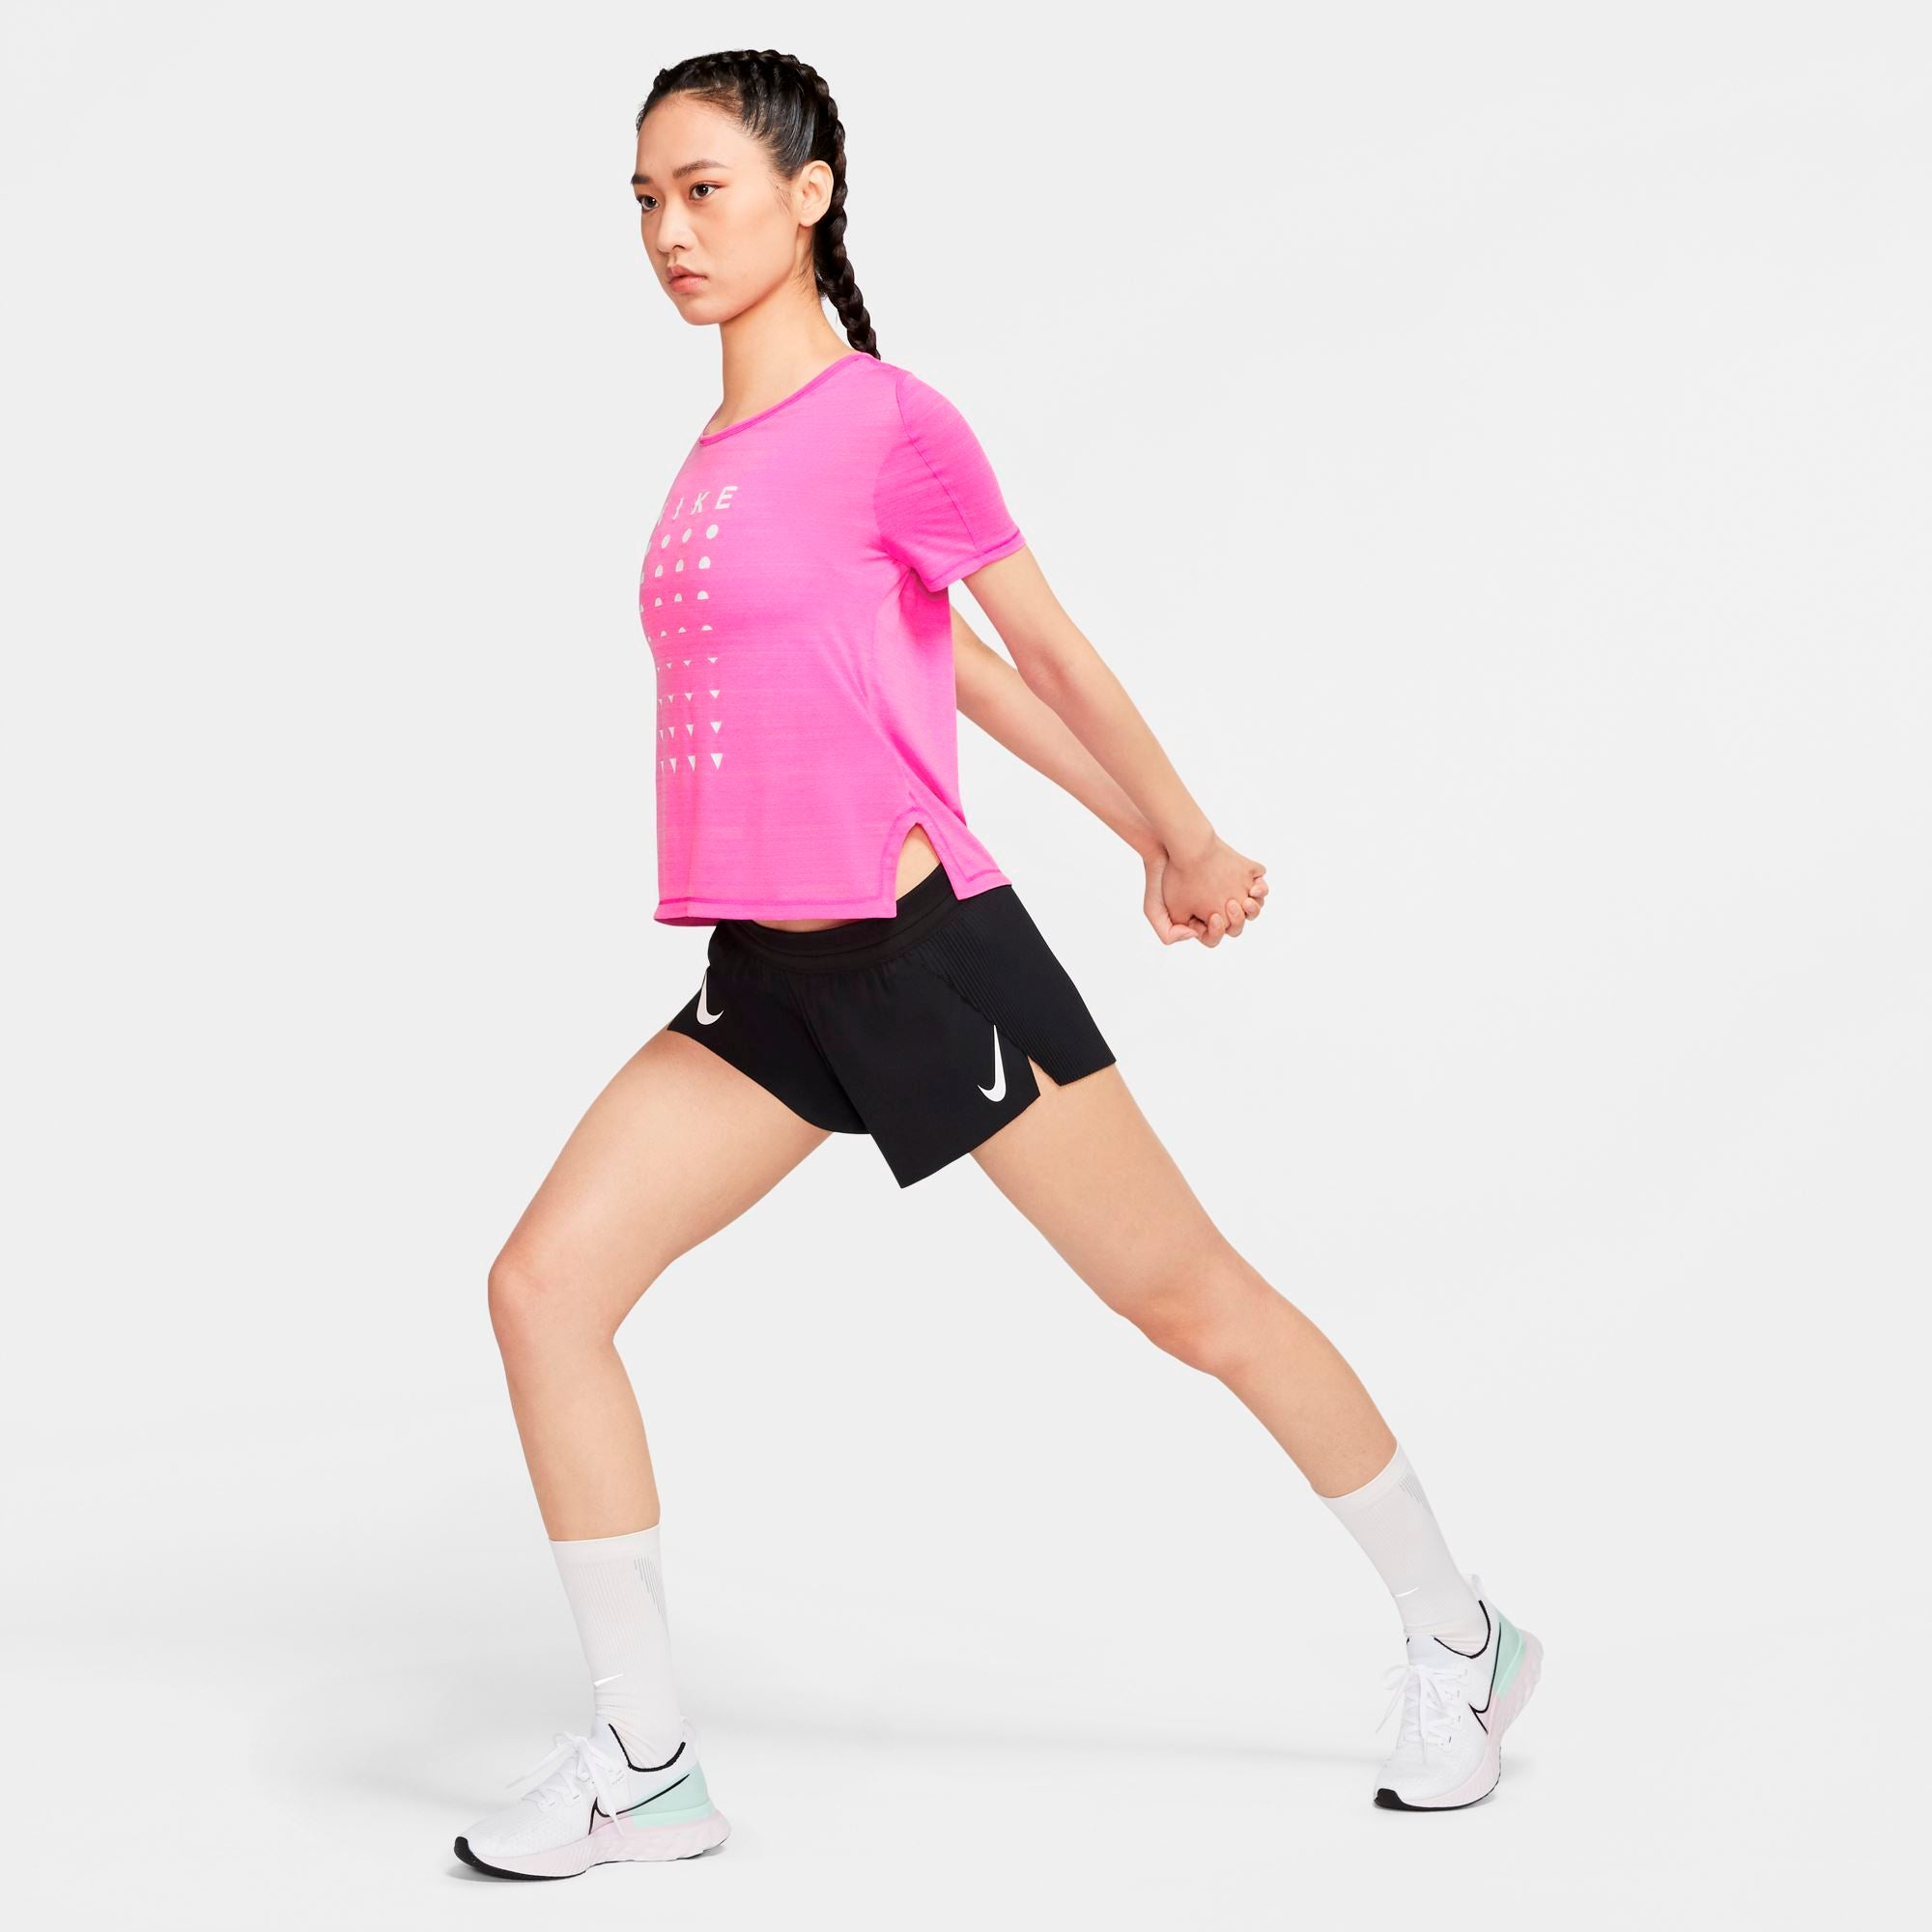 Nike Womens Icon Clash Short-Sleeve Running Top - Fire Pink/Htr/Magic Flamingo/White SP-ApparelTees-Womens Nike